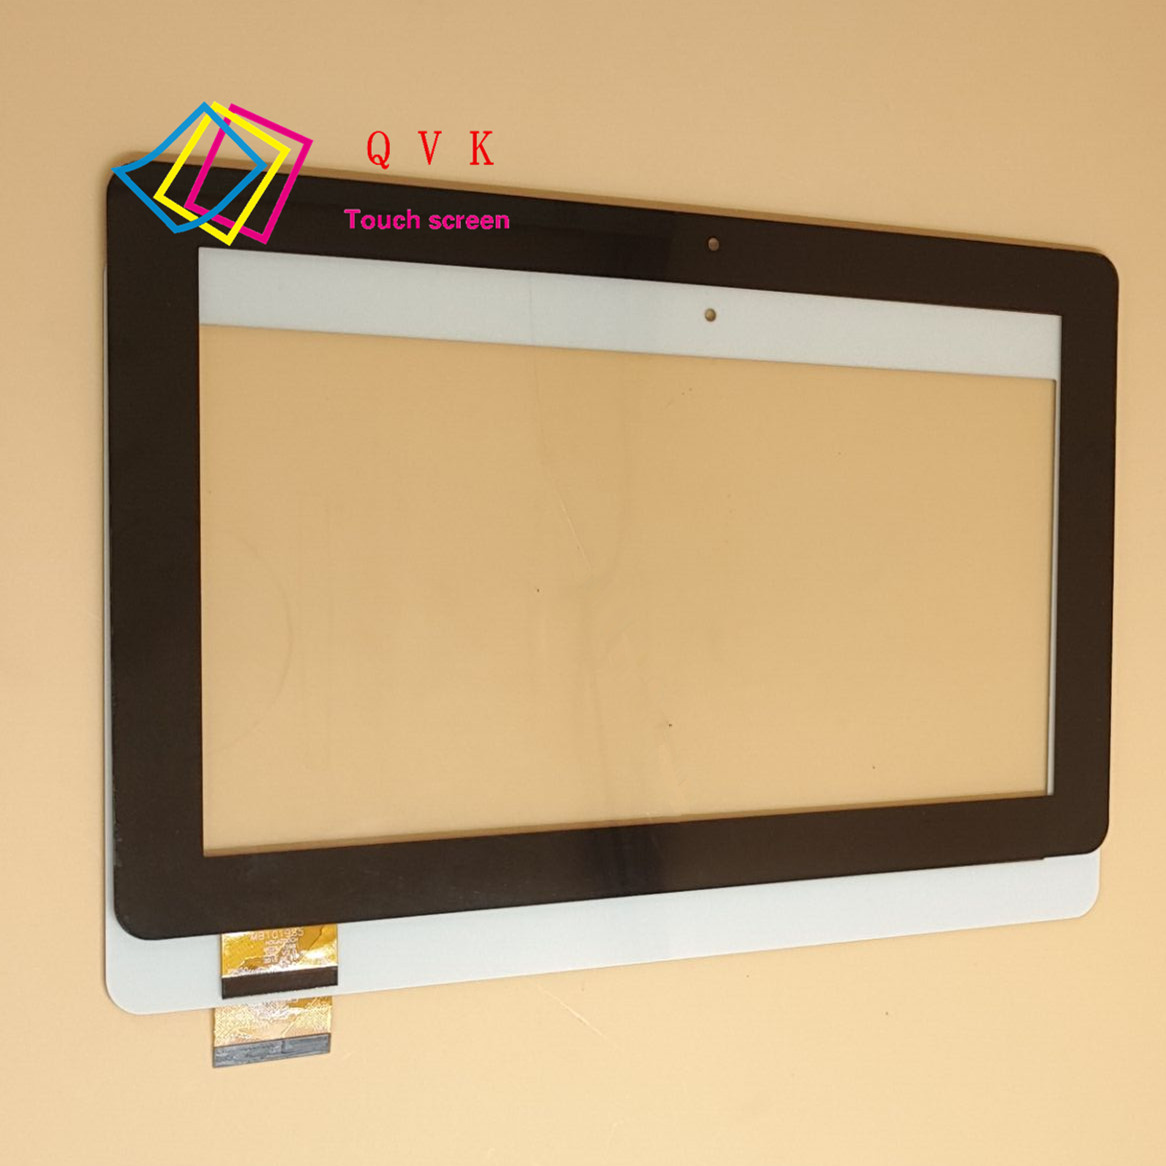 10.1inch MB1019S5 HOTATOUCH HC261159B1 FPC V2.0 capacitive touch screen panel digitizer glass sensor replacement new 7 fpc fc70s786 02 fhx touch screen digitizer glass sensor replacement parts fpc fc70s786 00 fhx touchscreen free shipping